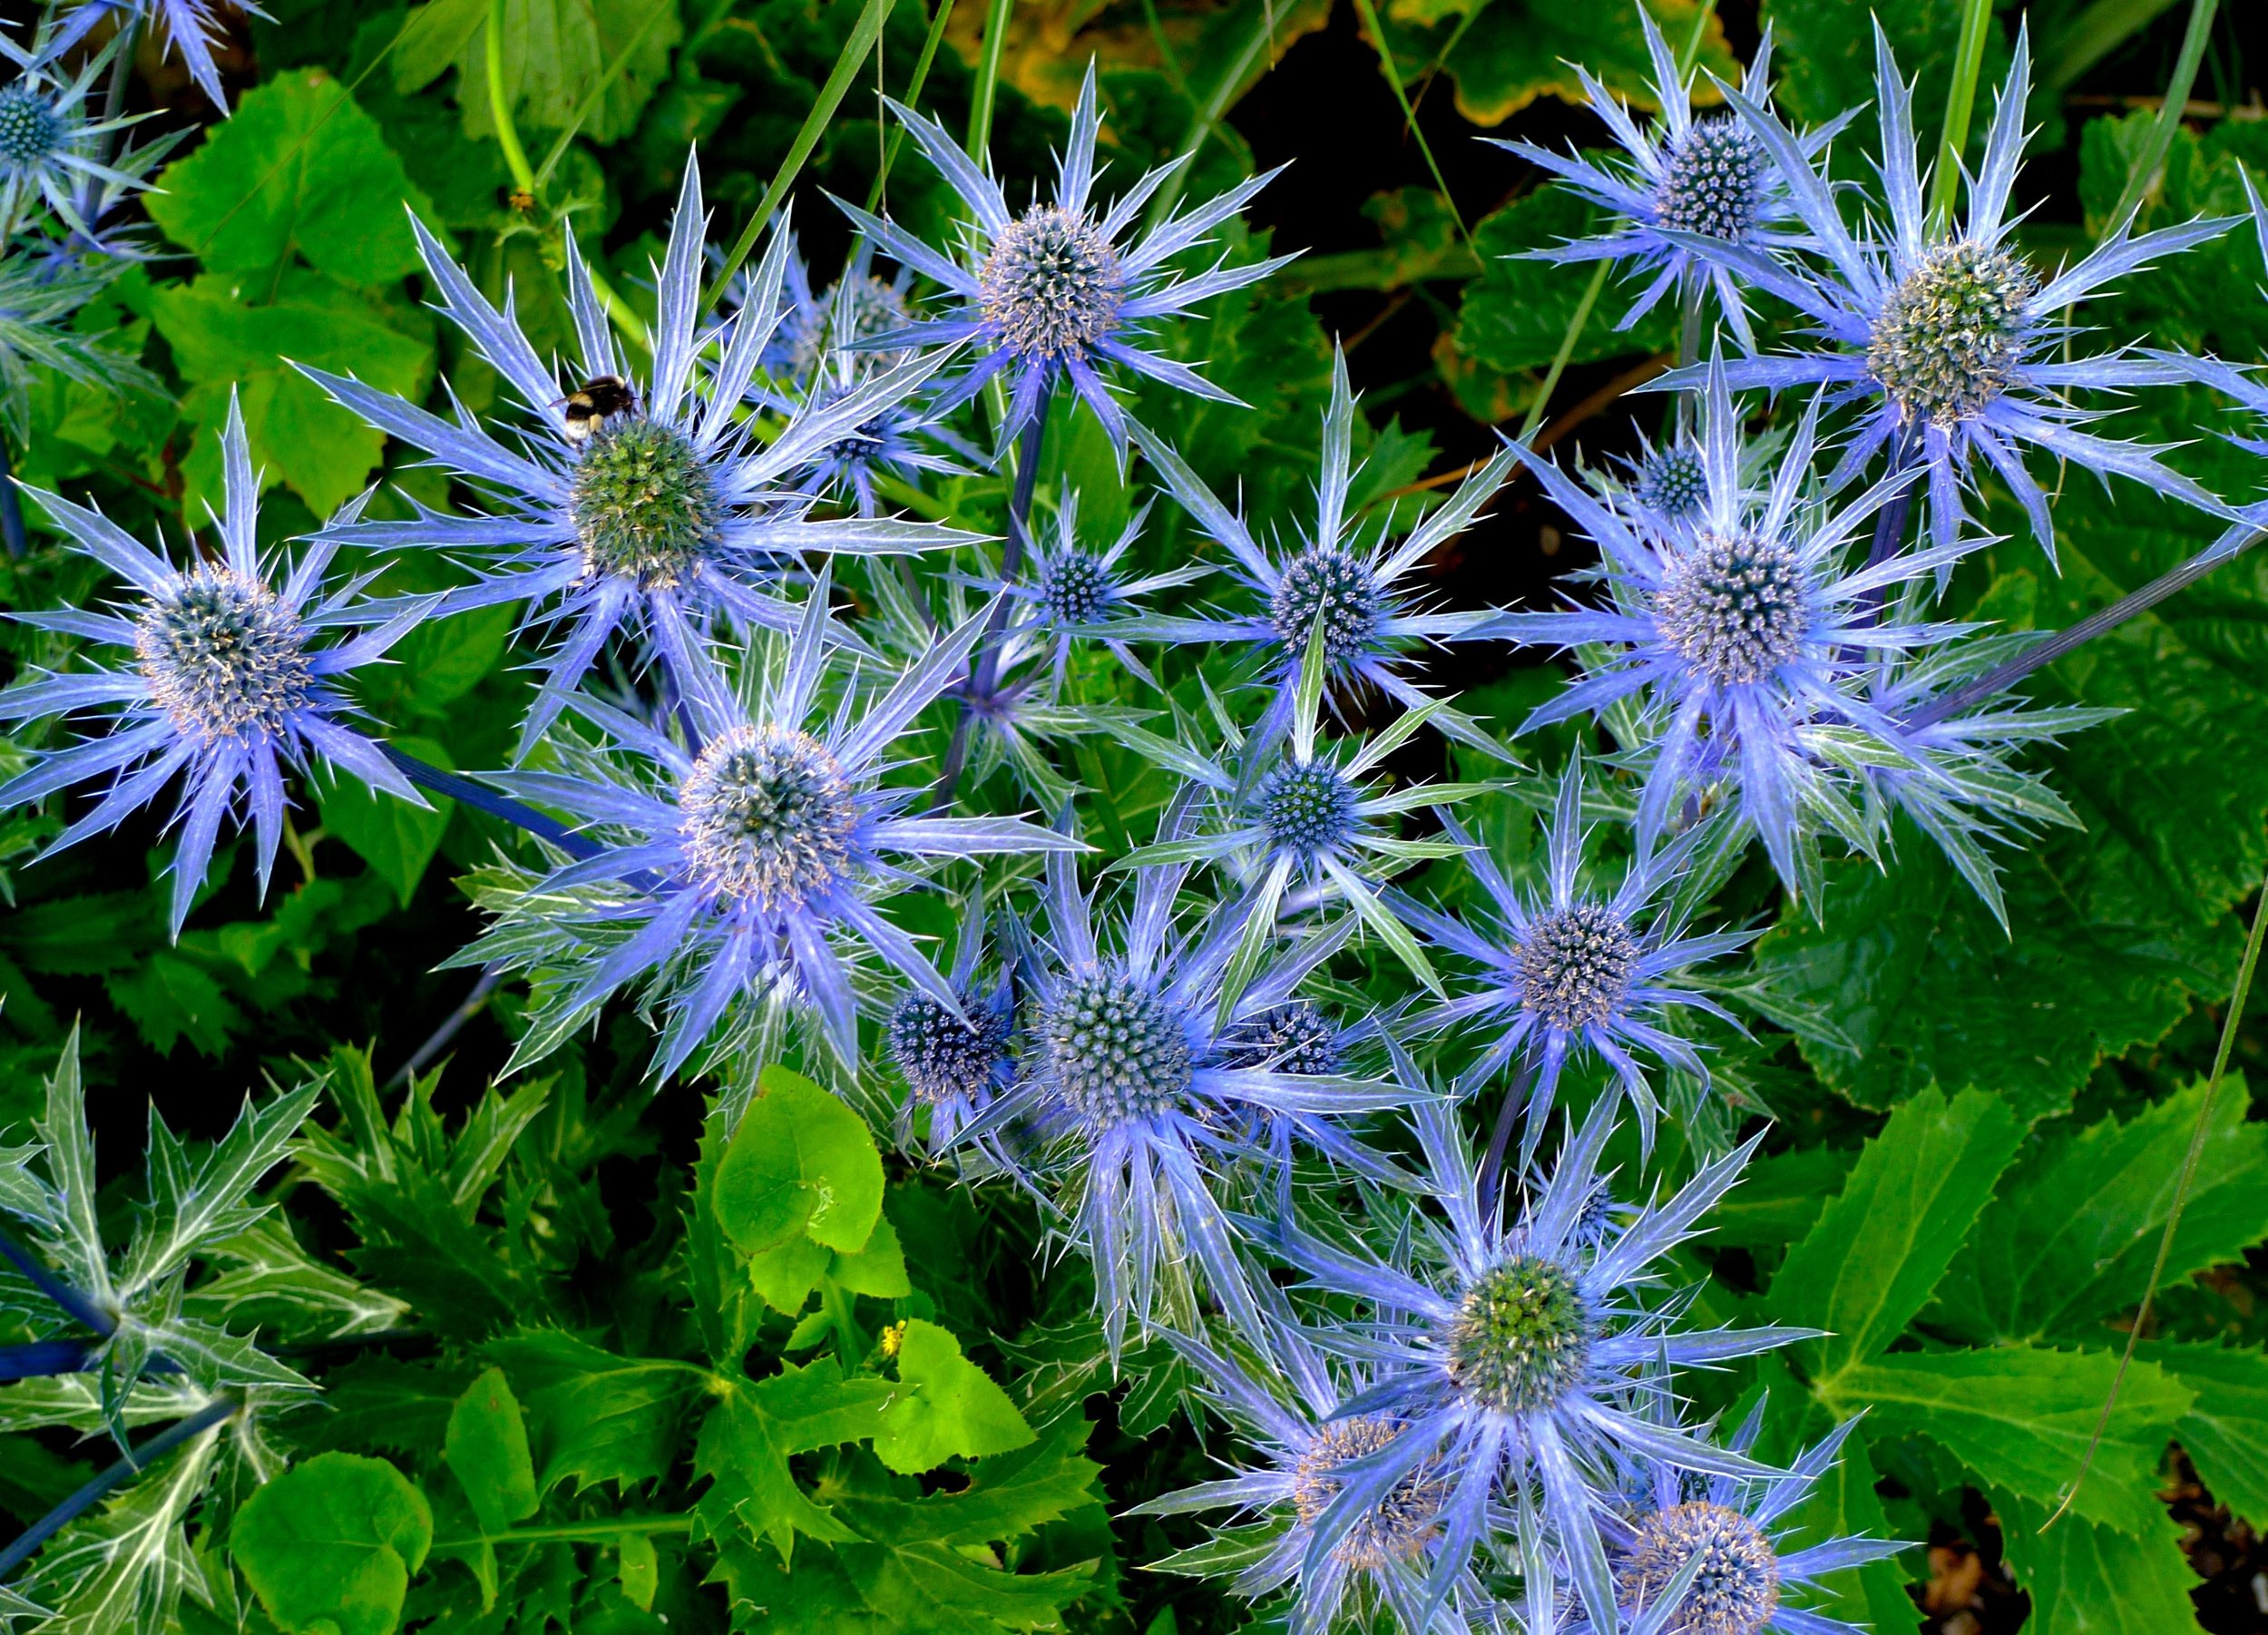 Looking down on Sea Holly